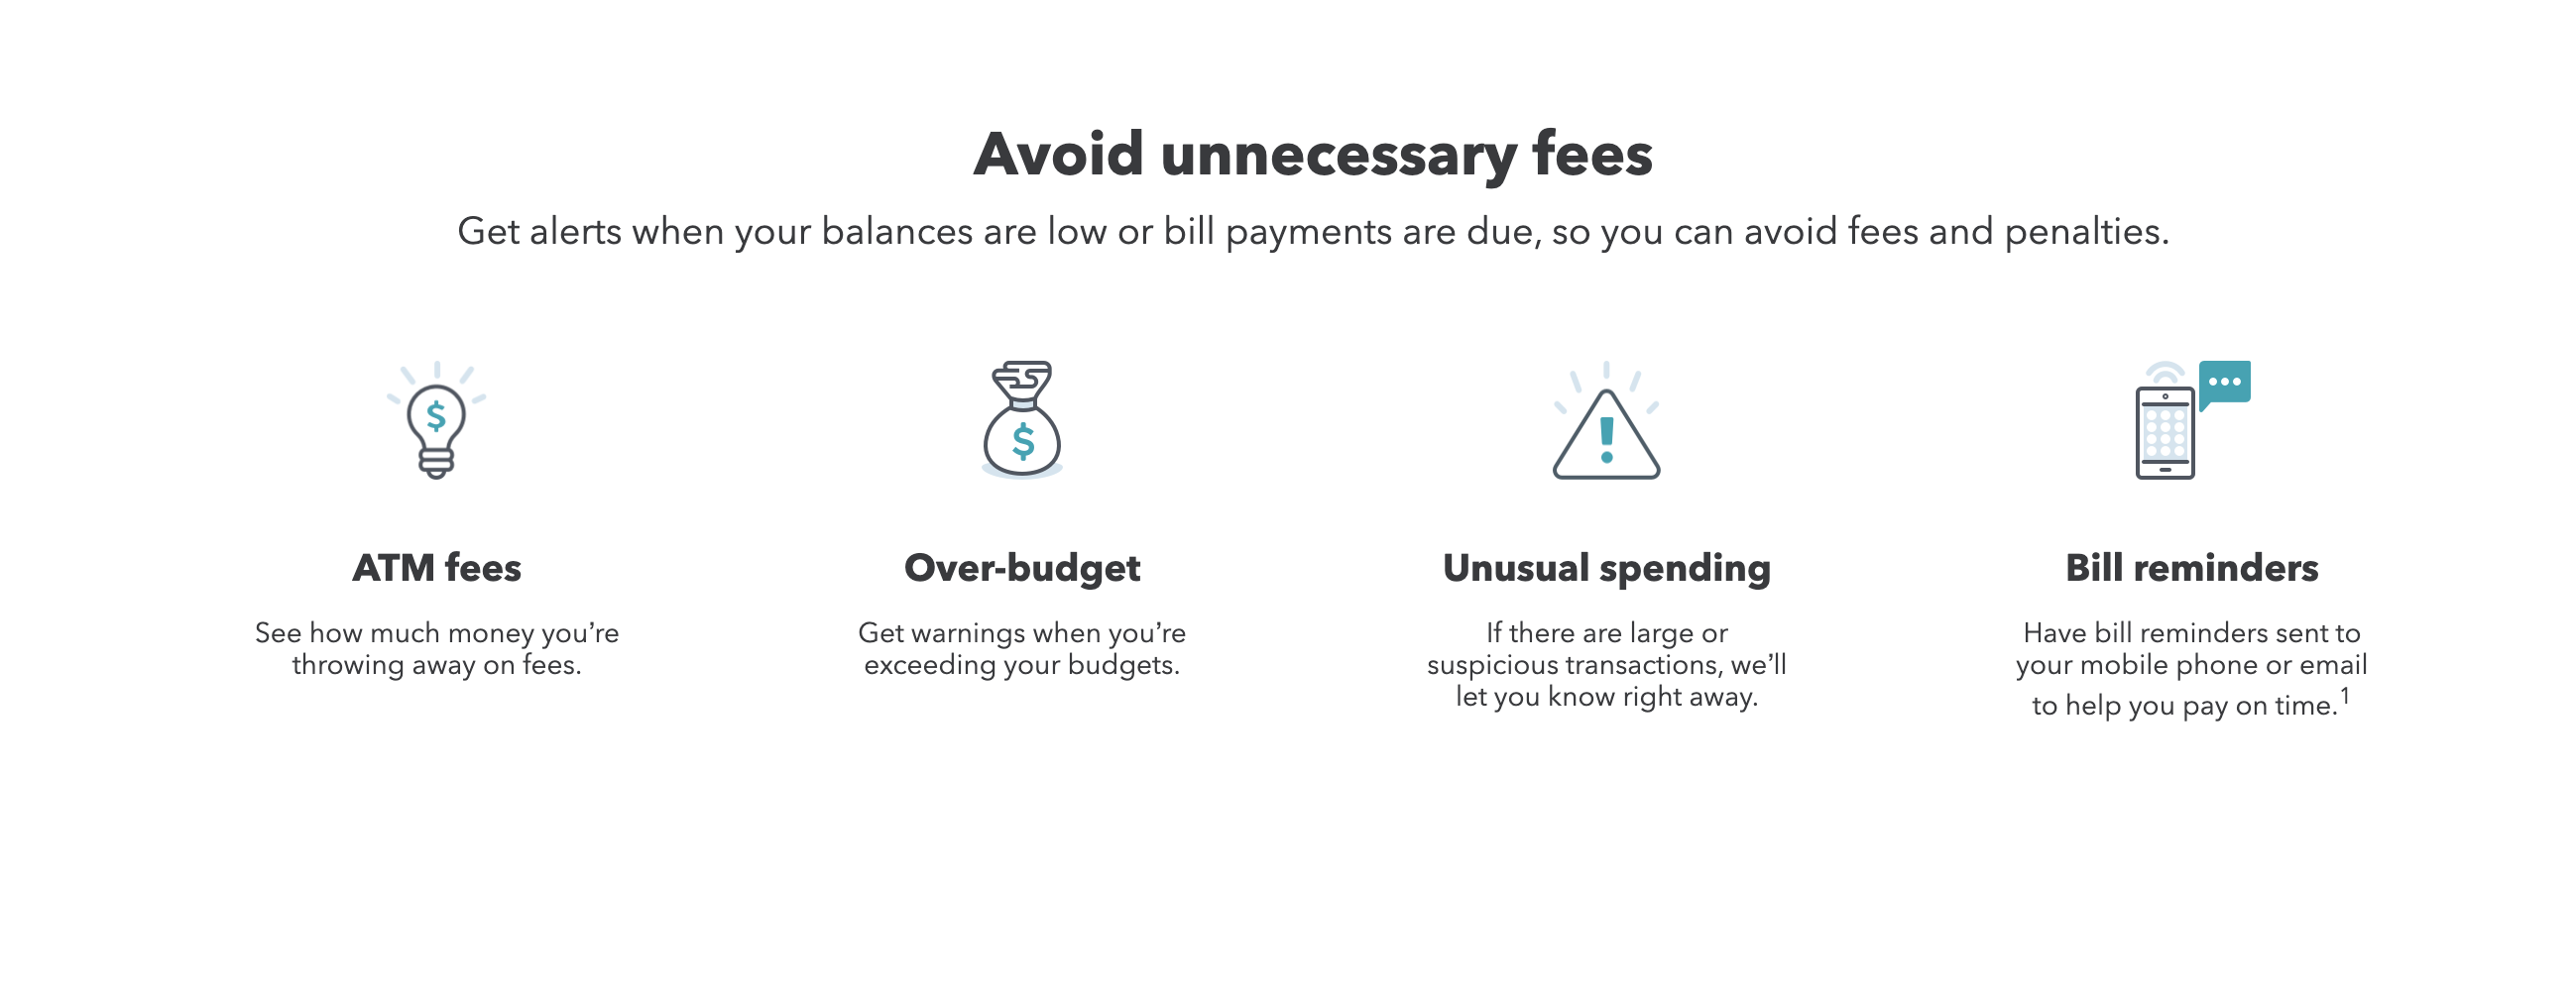 Mint gives users notifications when they're charged hidden fees, when they're about to go over budget, when unusual spending occurs on their account, and when a bill is coming due. Image from mint.intuit.com.